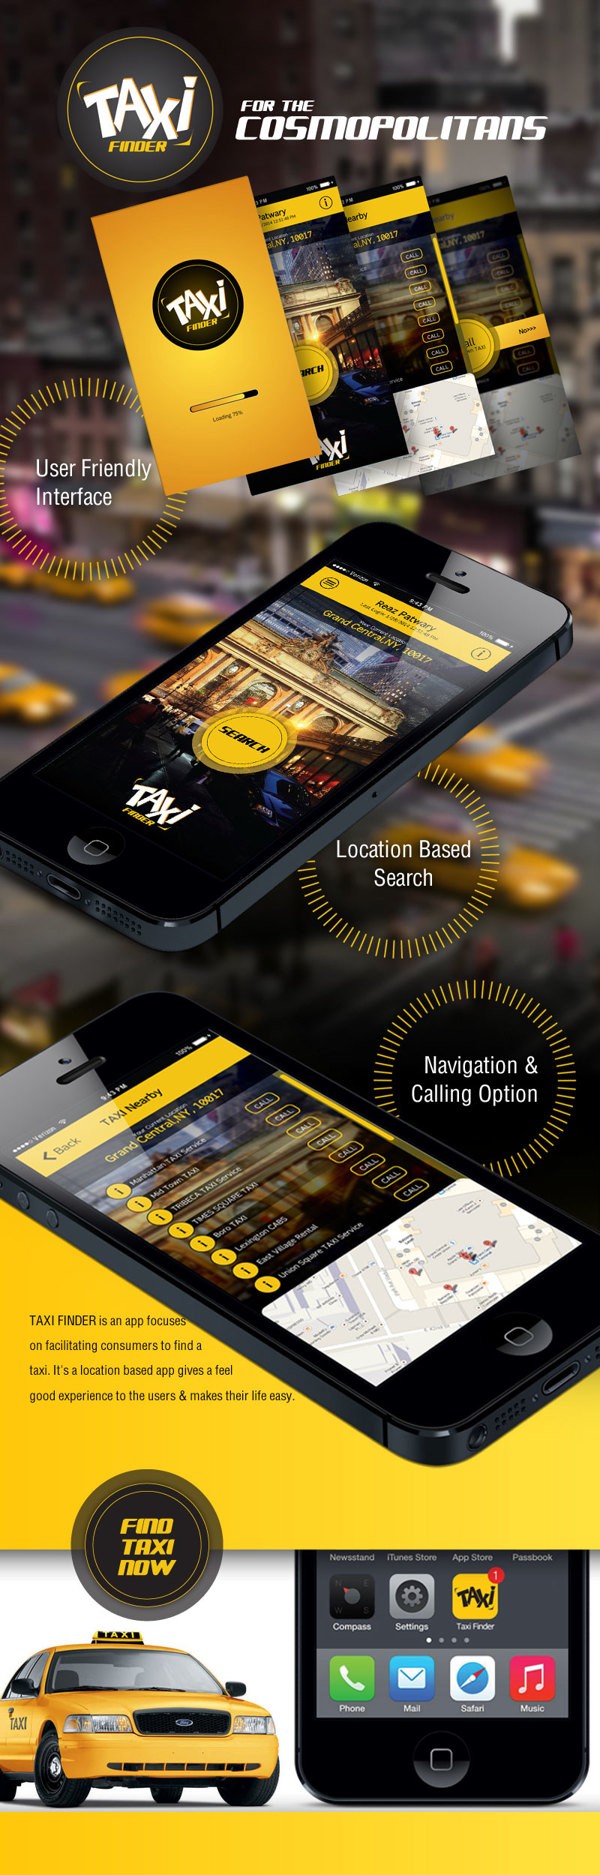 TAXI FINDER on Behance